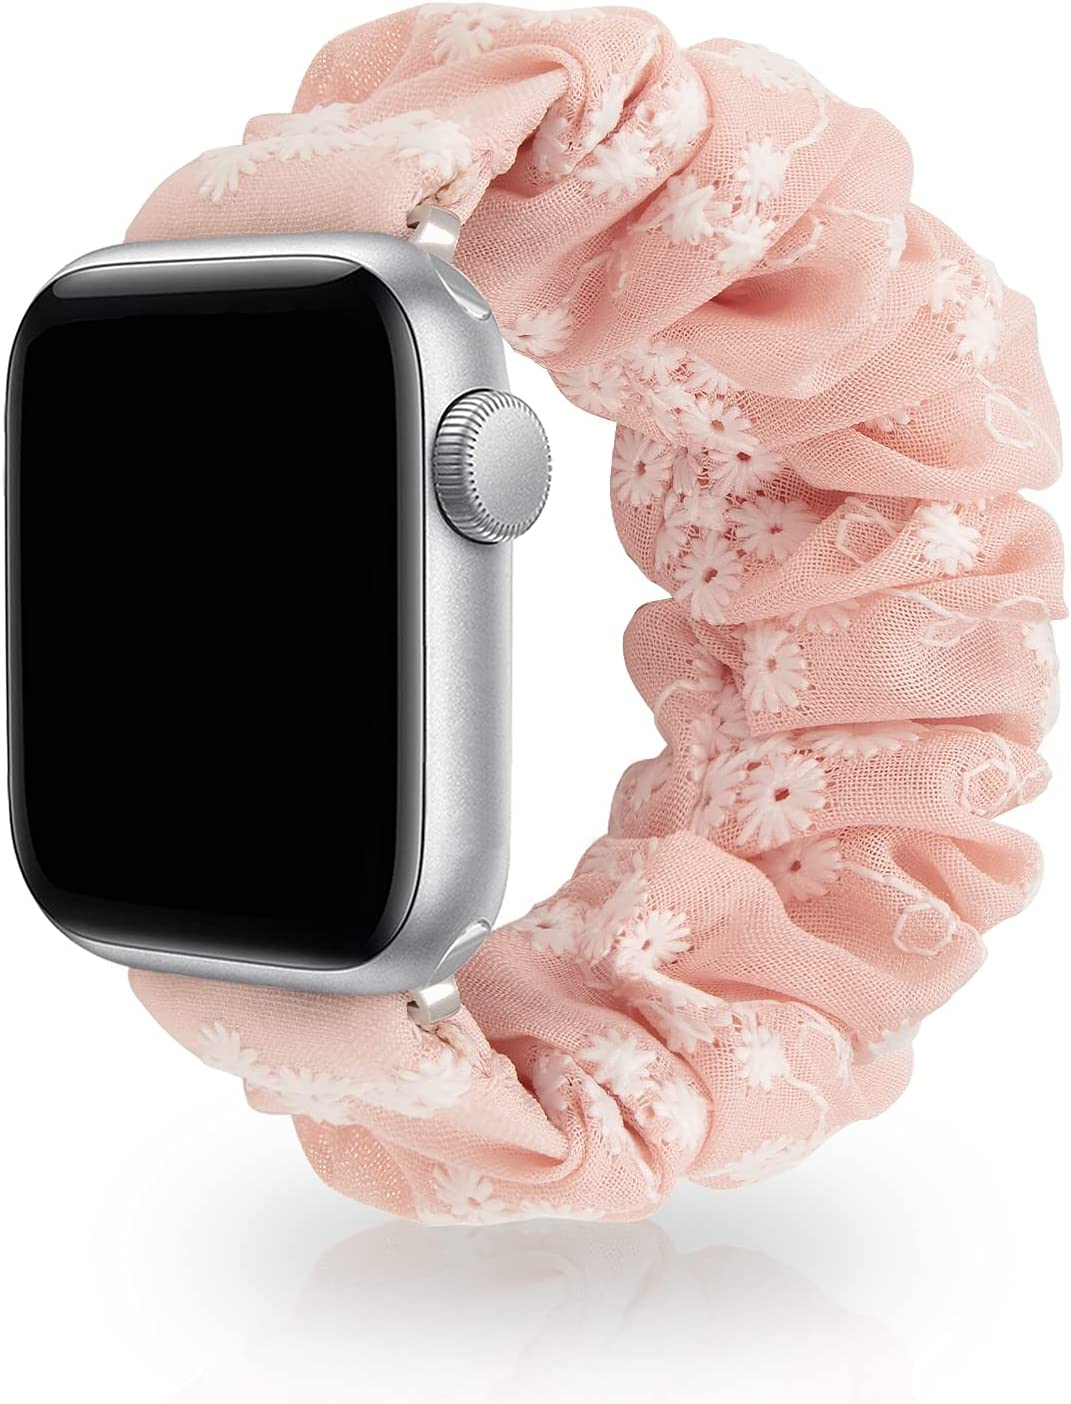 SAMYERLEN Compatible with Scrunchie Apple Watch Band 38mm 42mm 40mm 44mm for Women, Embroidery Elastic Watch Strap for iWatch Series SE 6 5 4 3 2 1, Cute Wristbands (S-38/40 Pink)